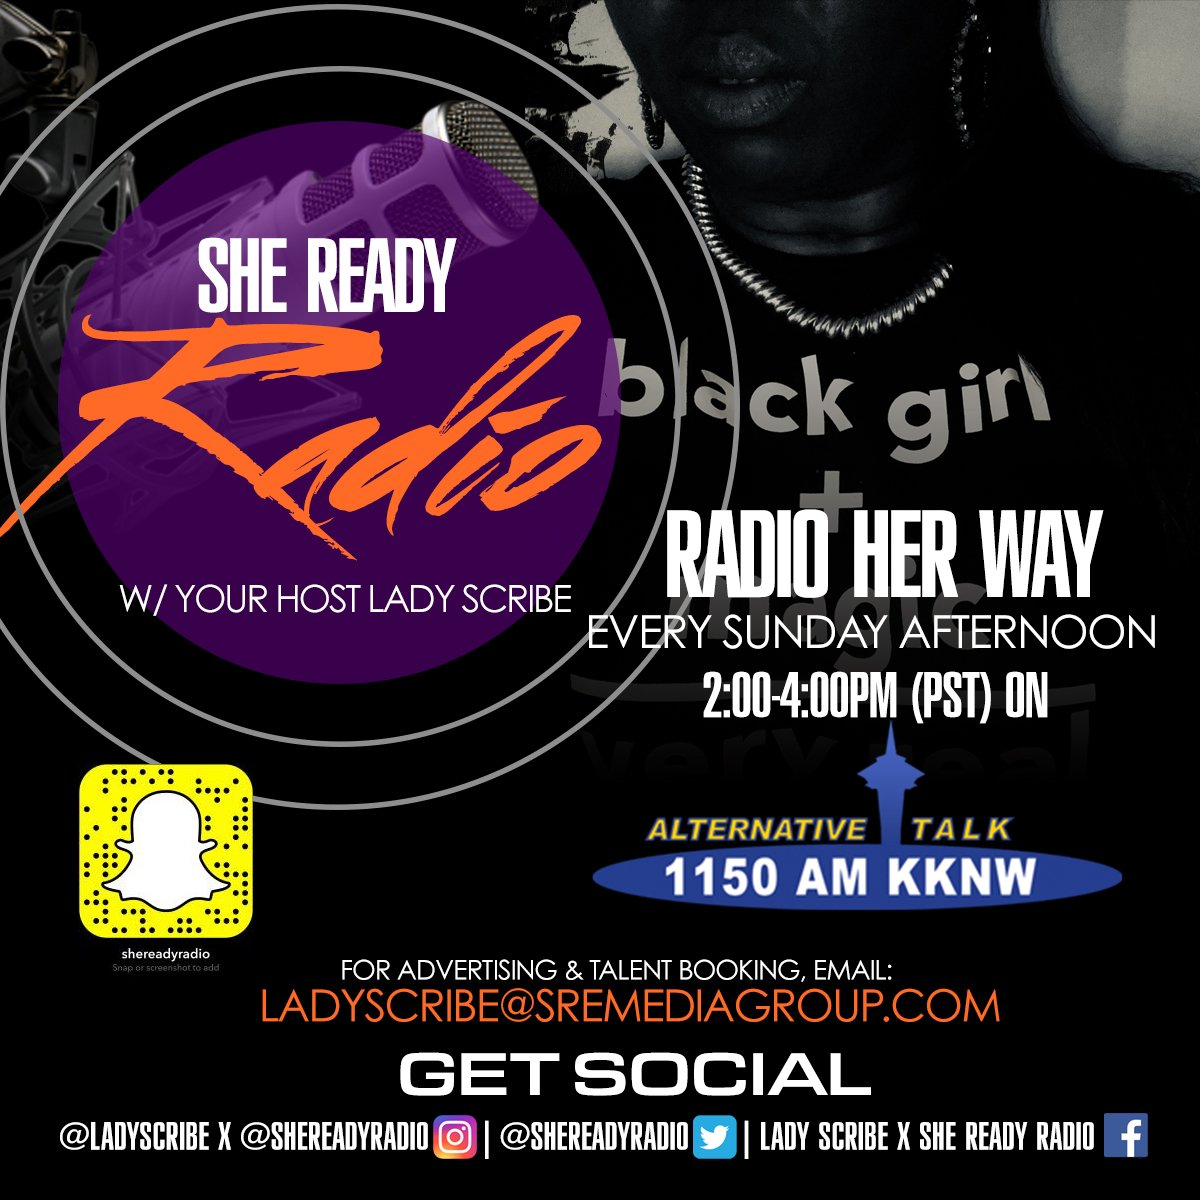 #Indie #Artists GET FEATURED ON @SheReadyRadio !!! On-Air/In-Studio Interviews for $50 LIVE on 1150 AM/KKNW E: shereadyradio@gmail.com #Music #Art #Film #Fashion #Entertainment #ThisIsRnB #ThisIs50 #XXL #AHH #BET #HipHopAwards #A3C #NewMusic #RnB #HipHop #Branding #Visibility <br>http://pic.twitter.com/qcvW9nUEnZ